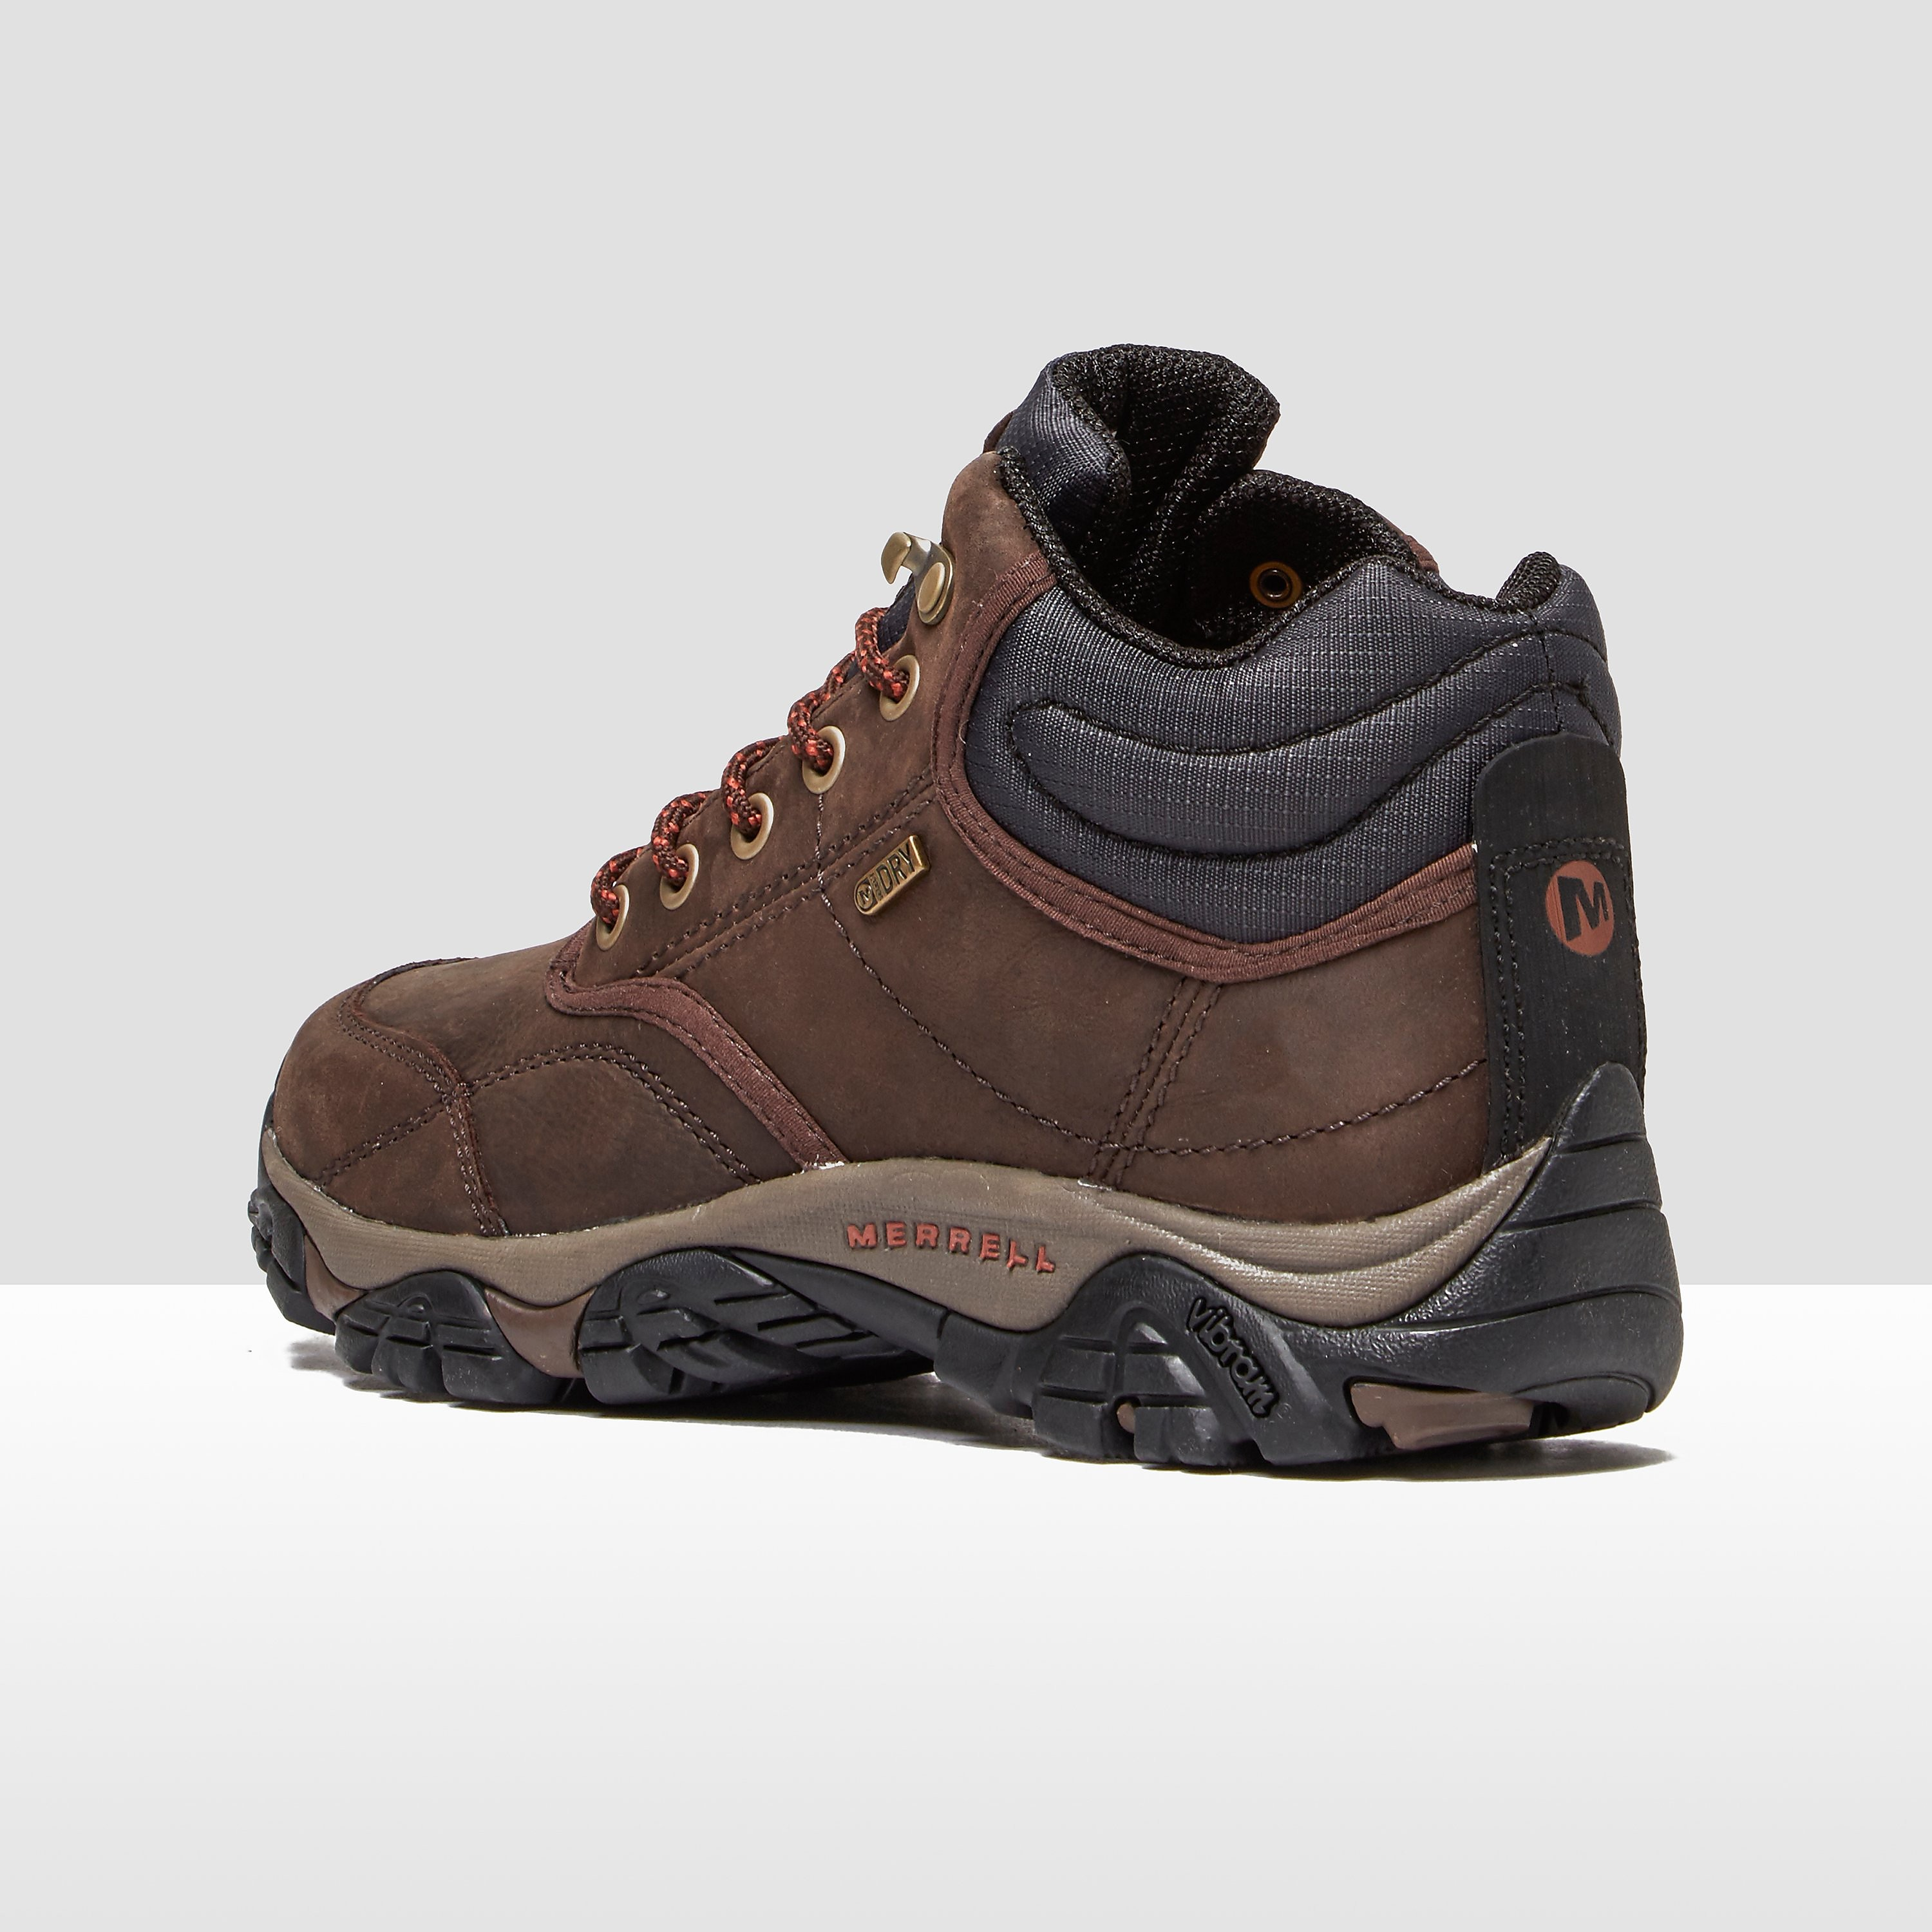 Merrell Men's Moab Rover Mid Waterproof Boot